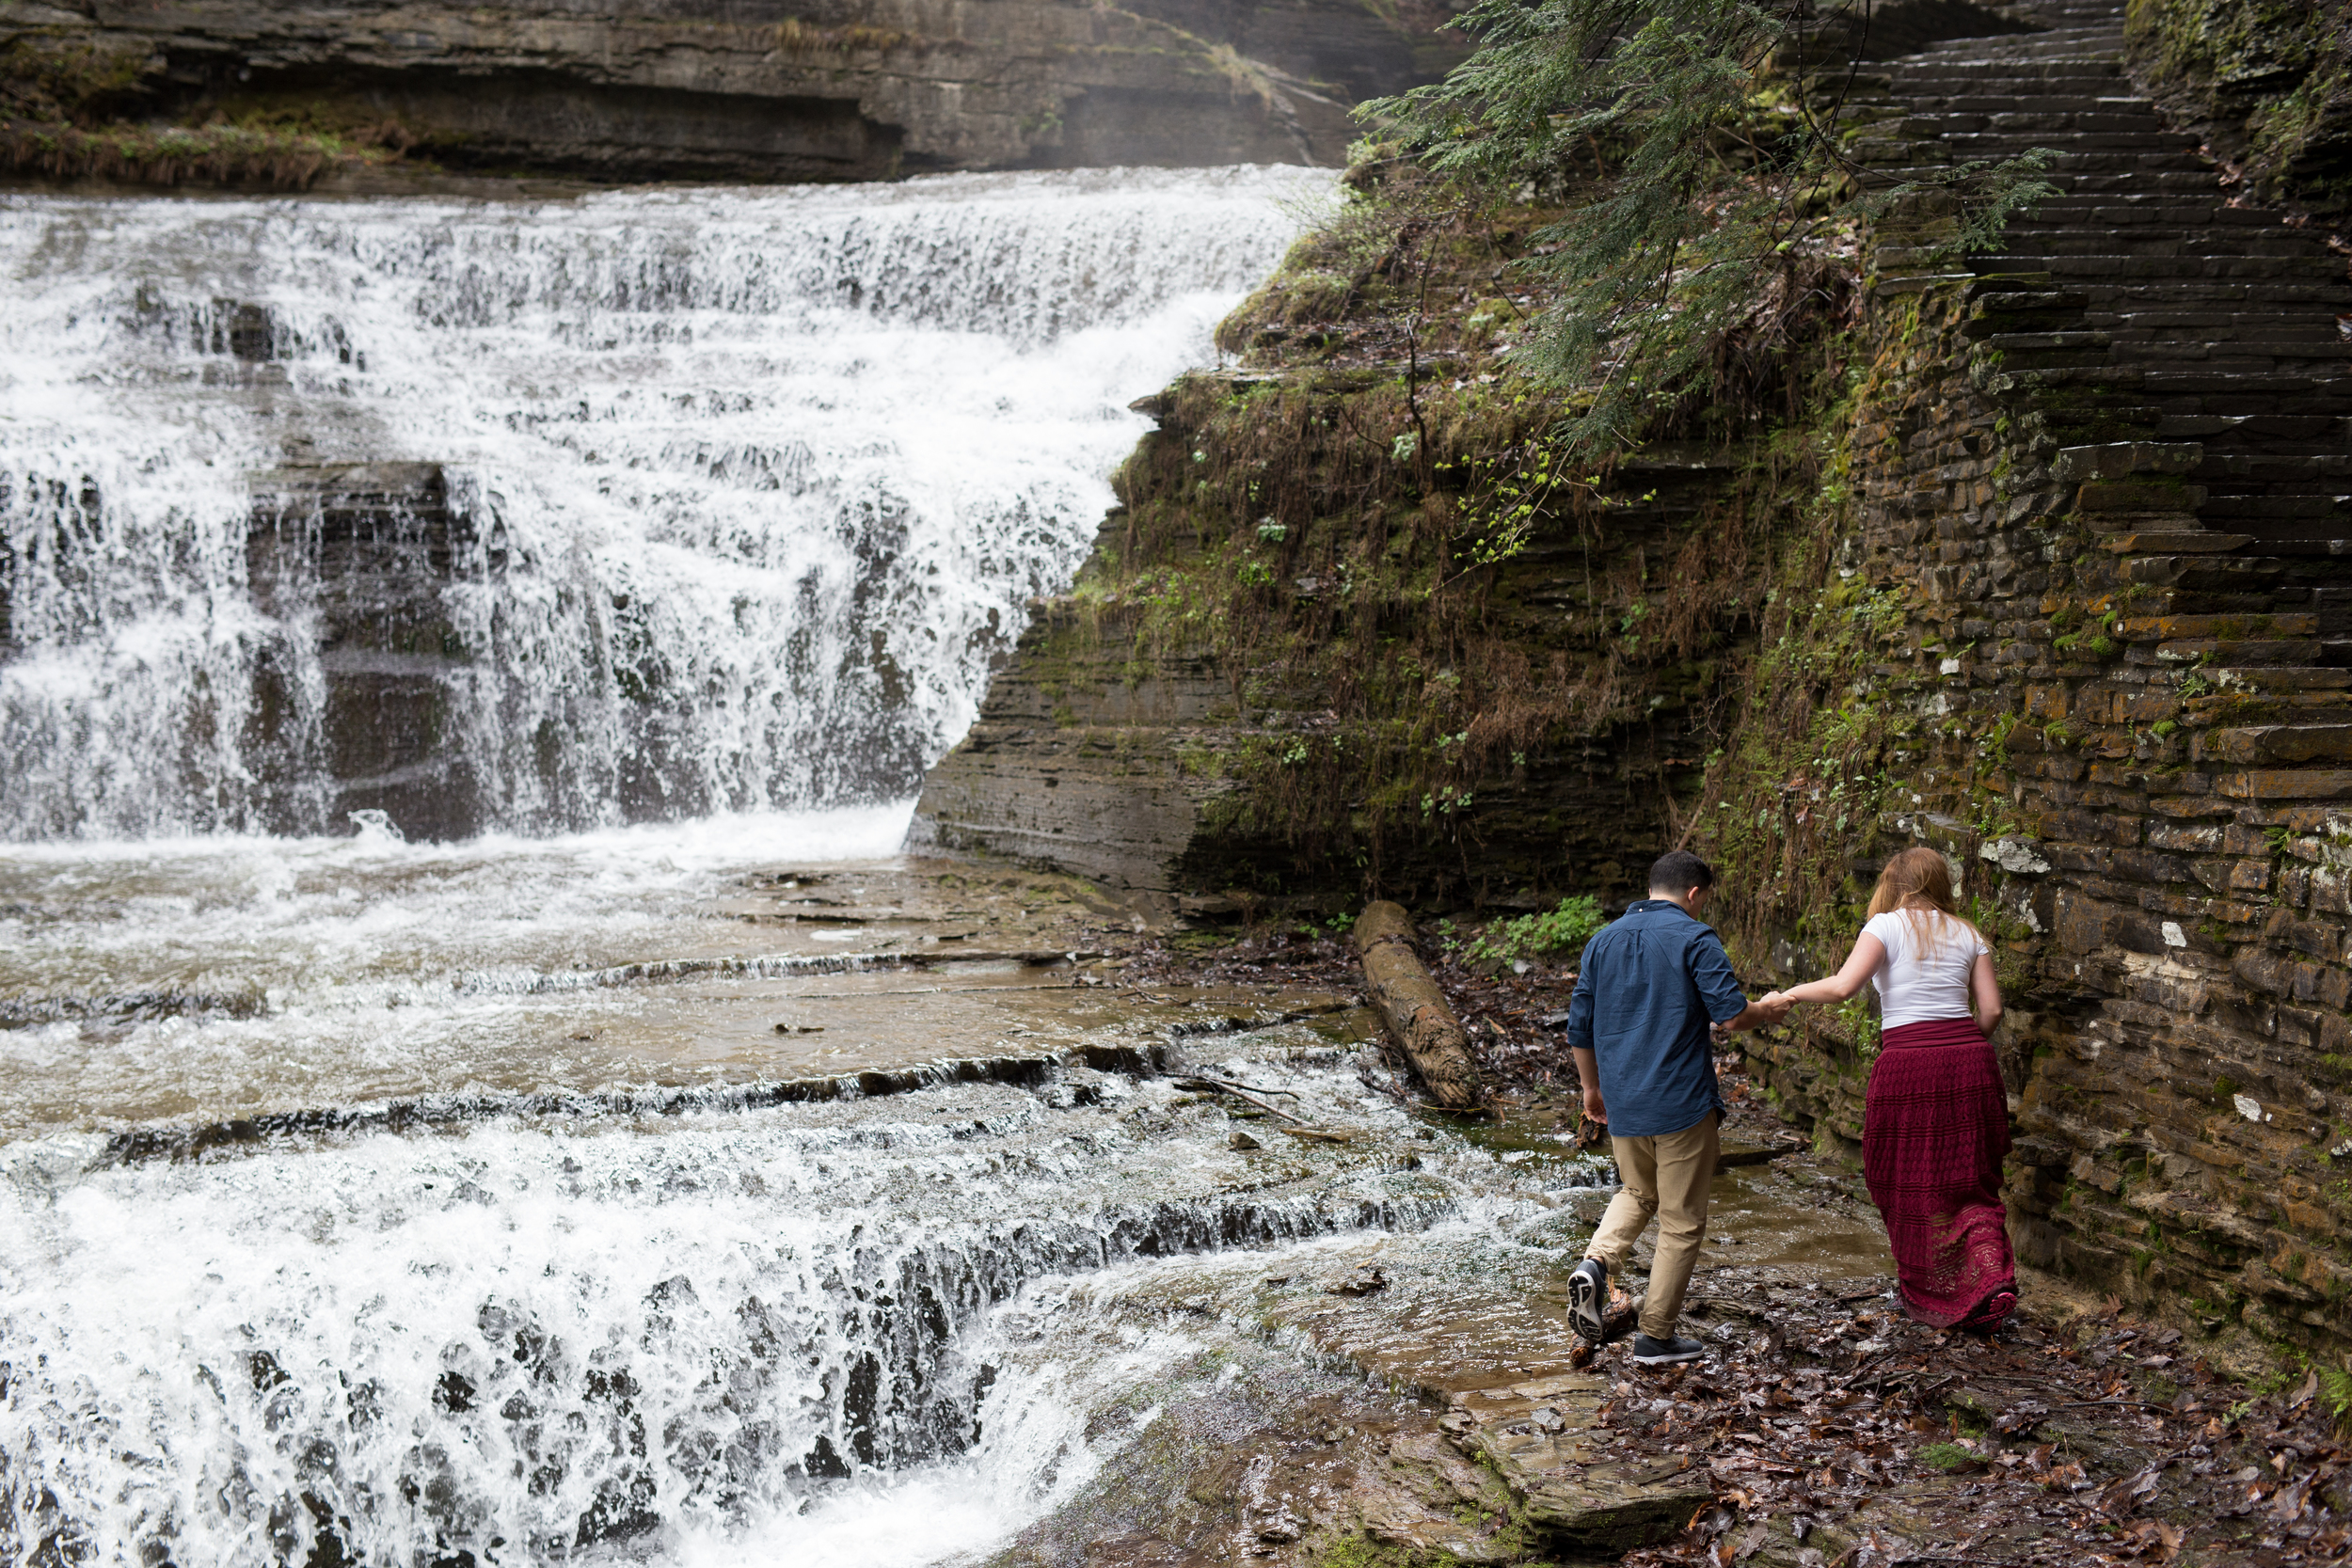 A_J_Engagement_Session_Waterfall_Nick_Natasha_Photography-28.jpg